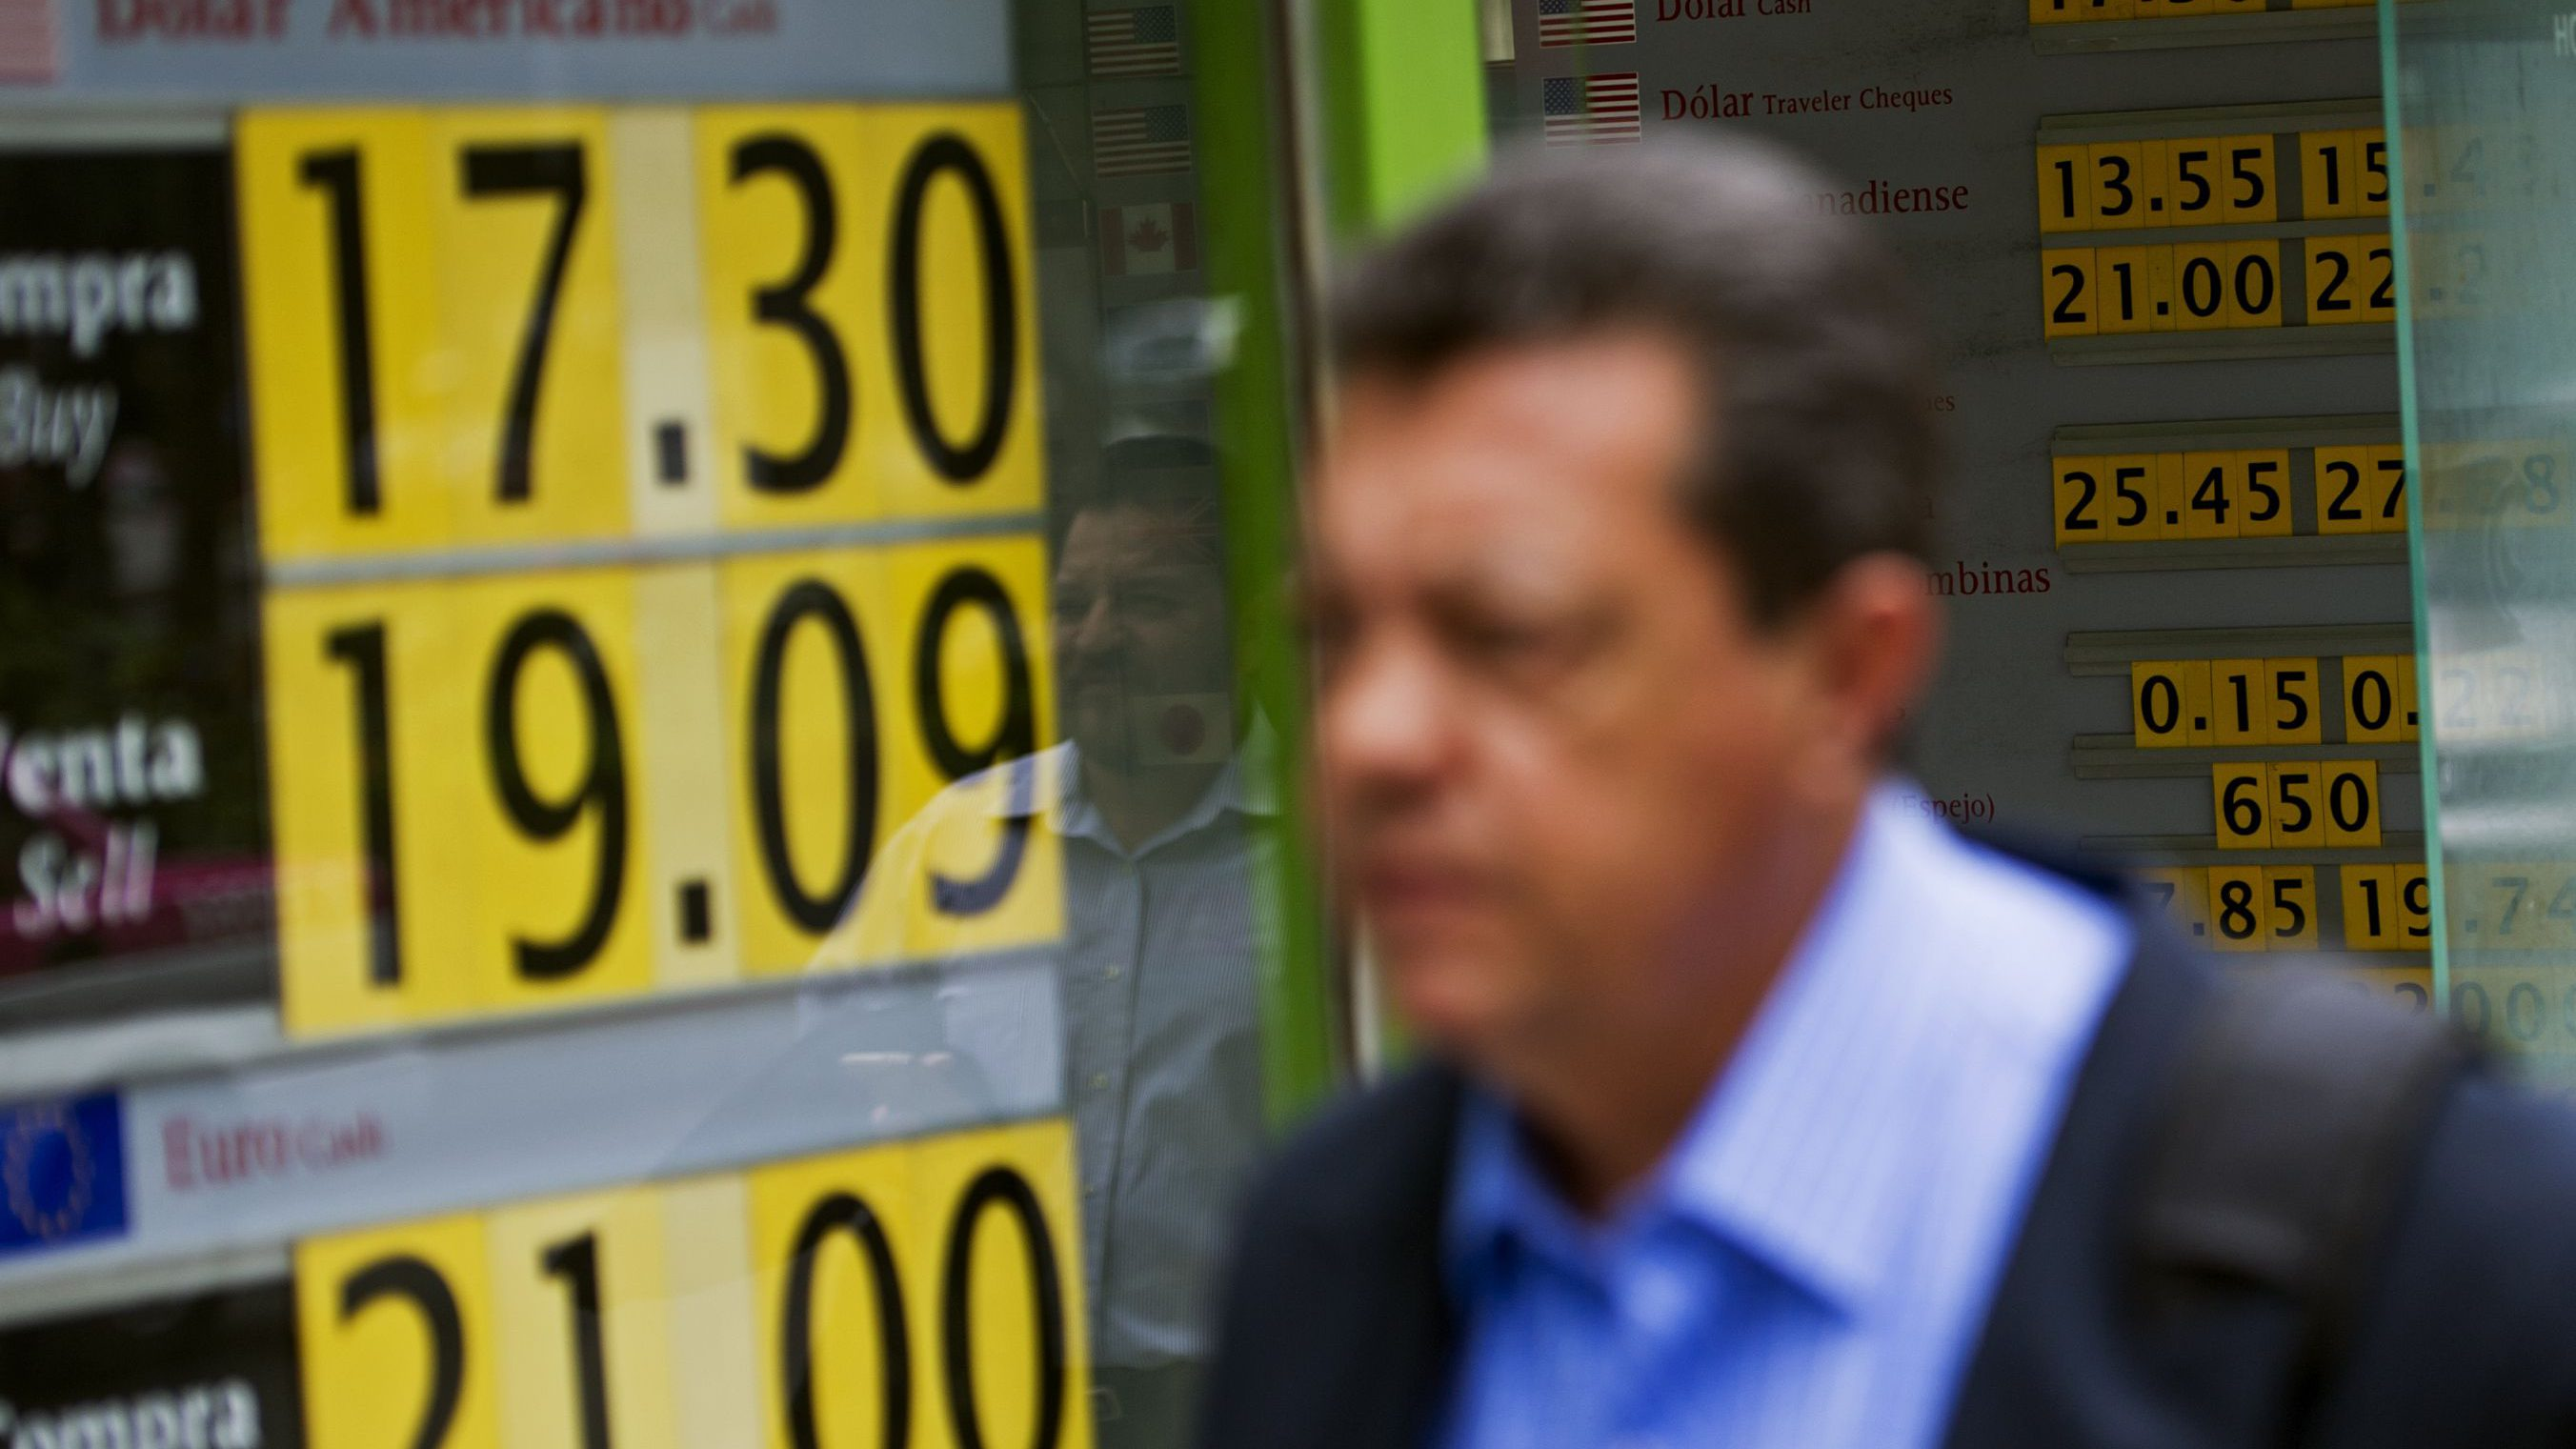 A pedestrian walks past a currency exchange store in Mexico City, Friday, June 24, 2016. The Mexican peso continues to weaken against international currencies after Britain's vote to exit the European Union. (AP Photo/Nick Wagner)